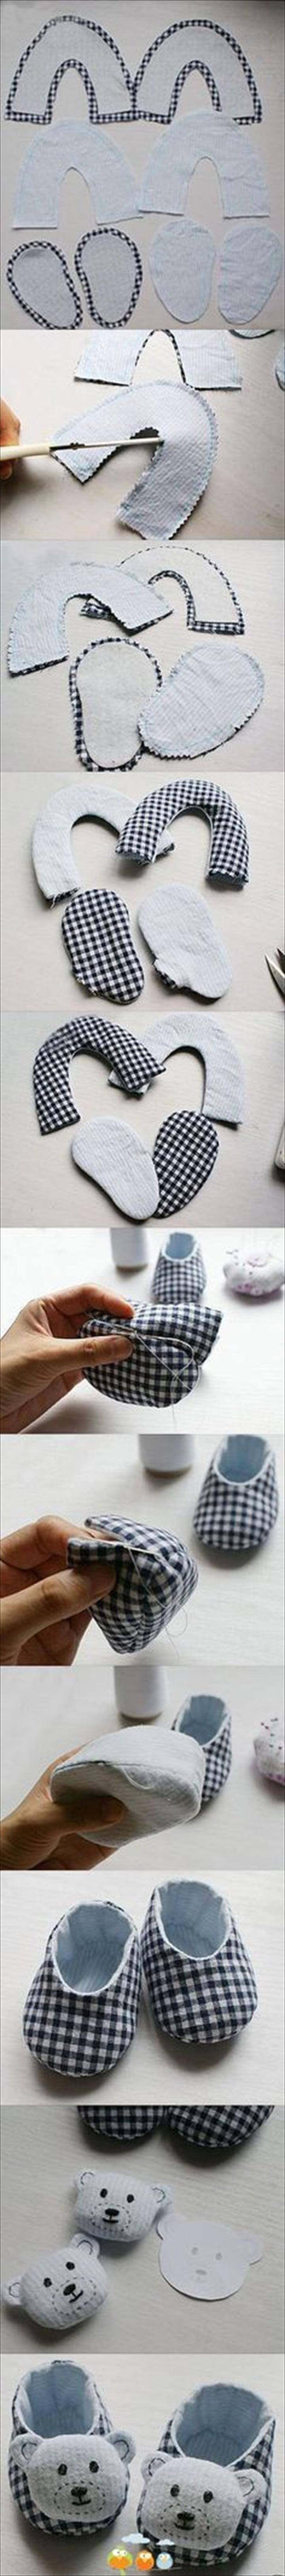 handmade animal inspired DIY baby booties